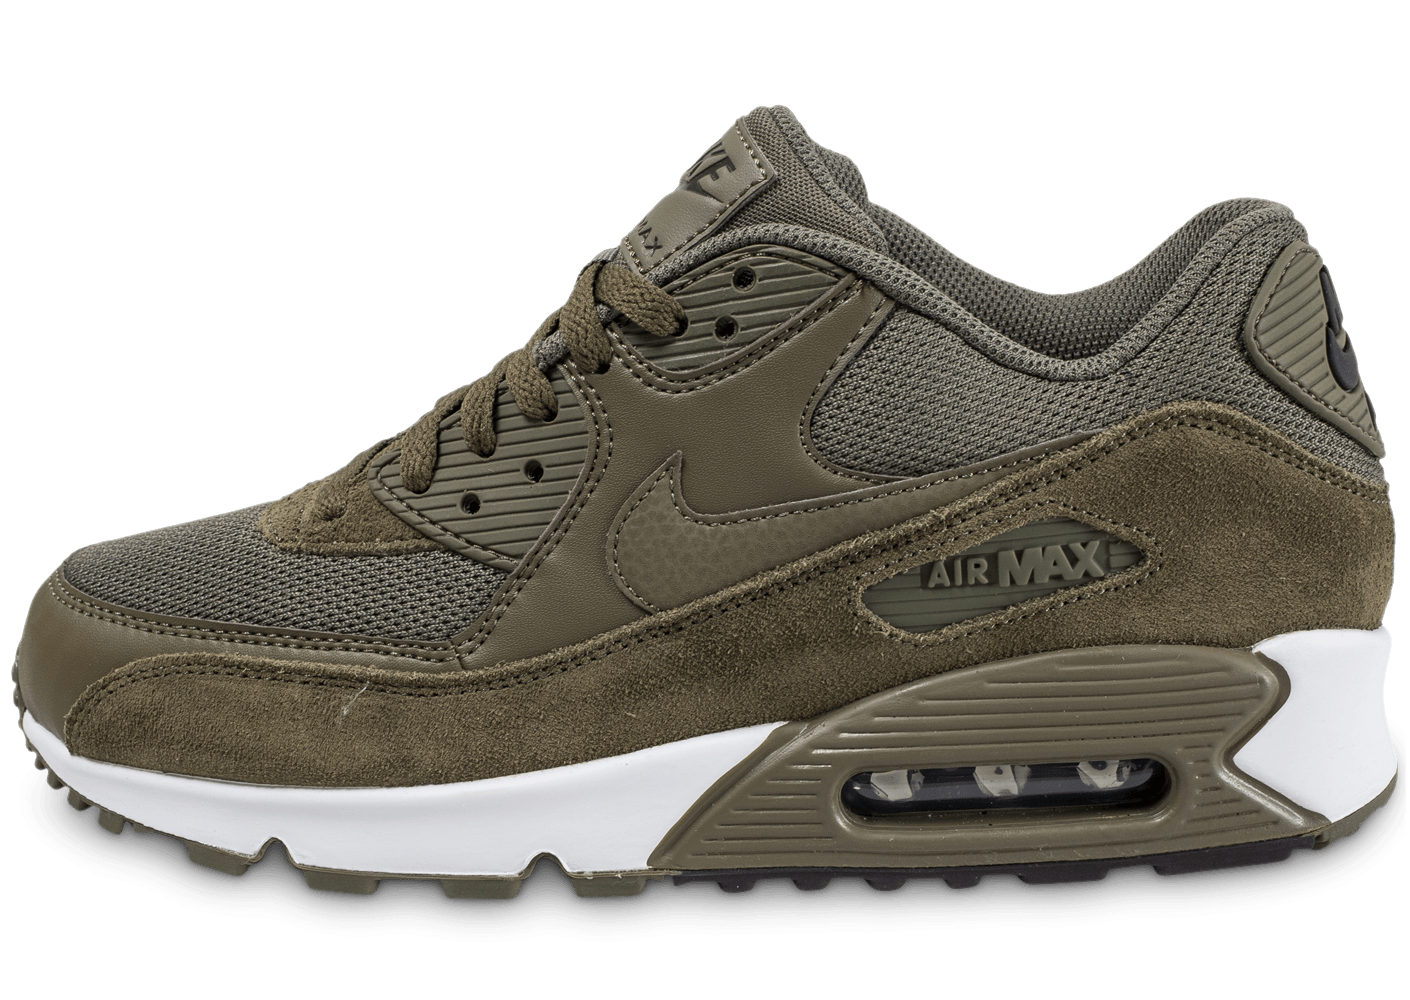 nike air max 90 essential medium olive chaussures baskets homme chausport. Black Bedroom Furniture Sets. Home Design Ideas